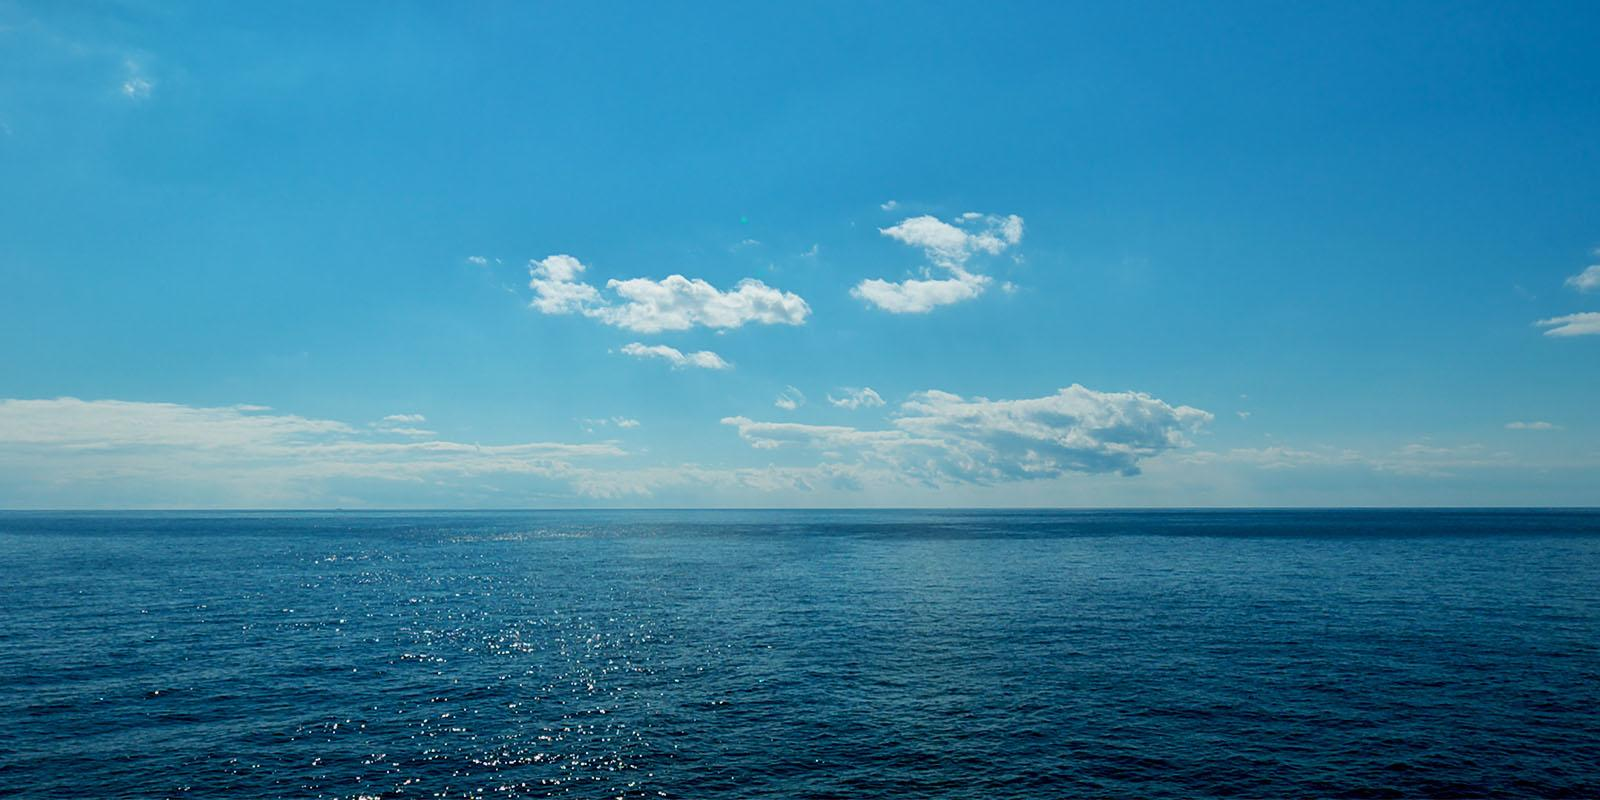 The sea seen from the sea